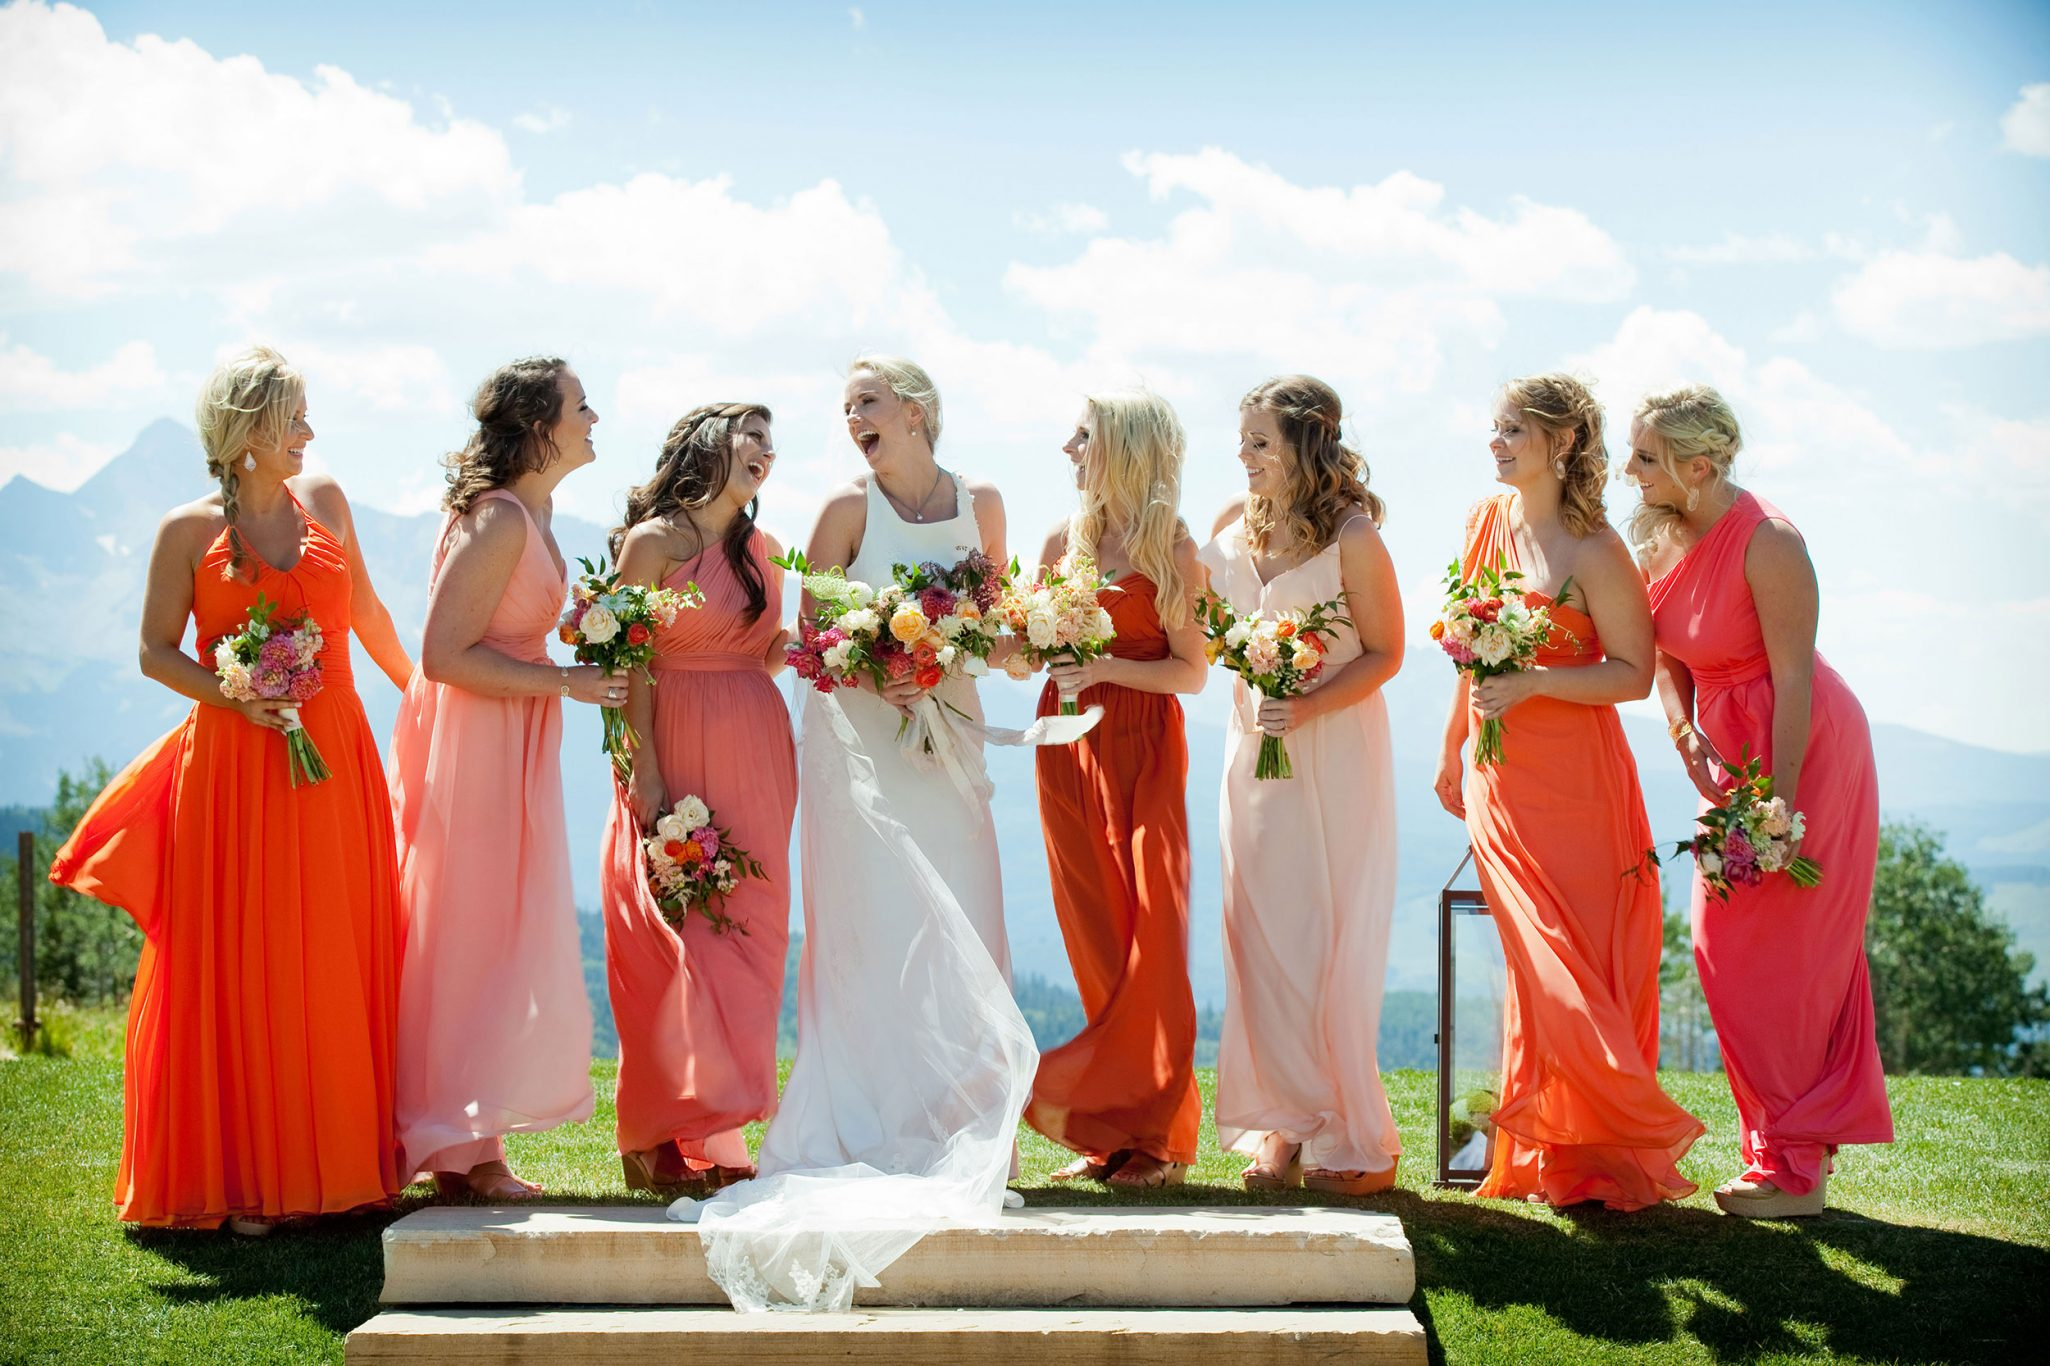 Bridesmaids dressed in the clolors of the alpineglow sunset including Pantone's 2019 Color of the Year: Living Coral